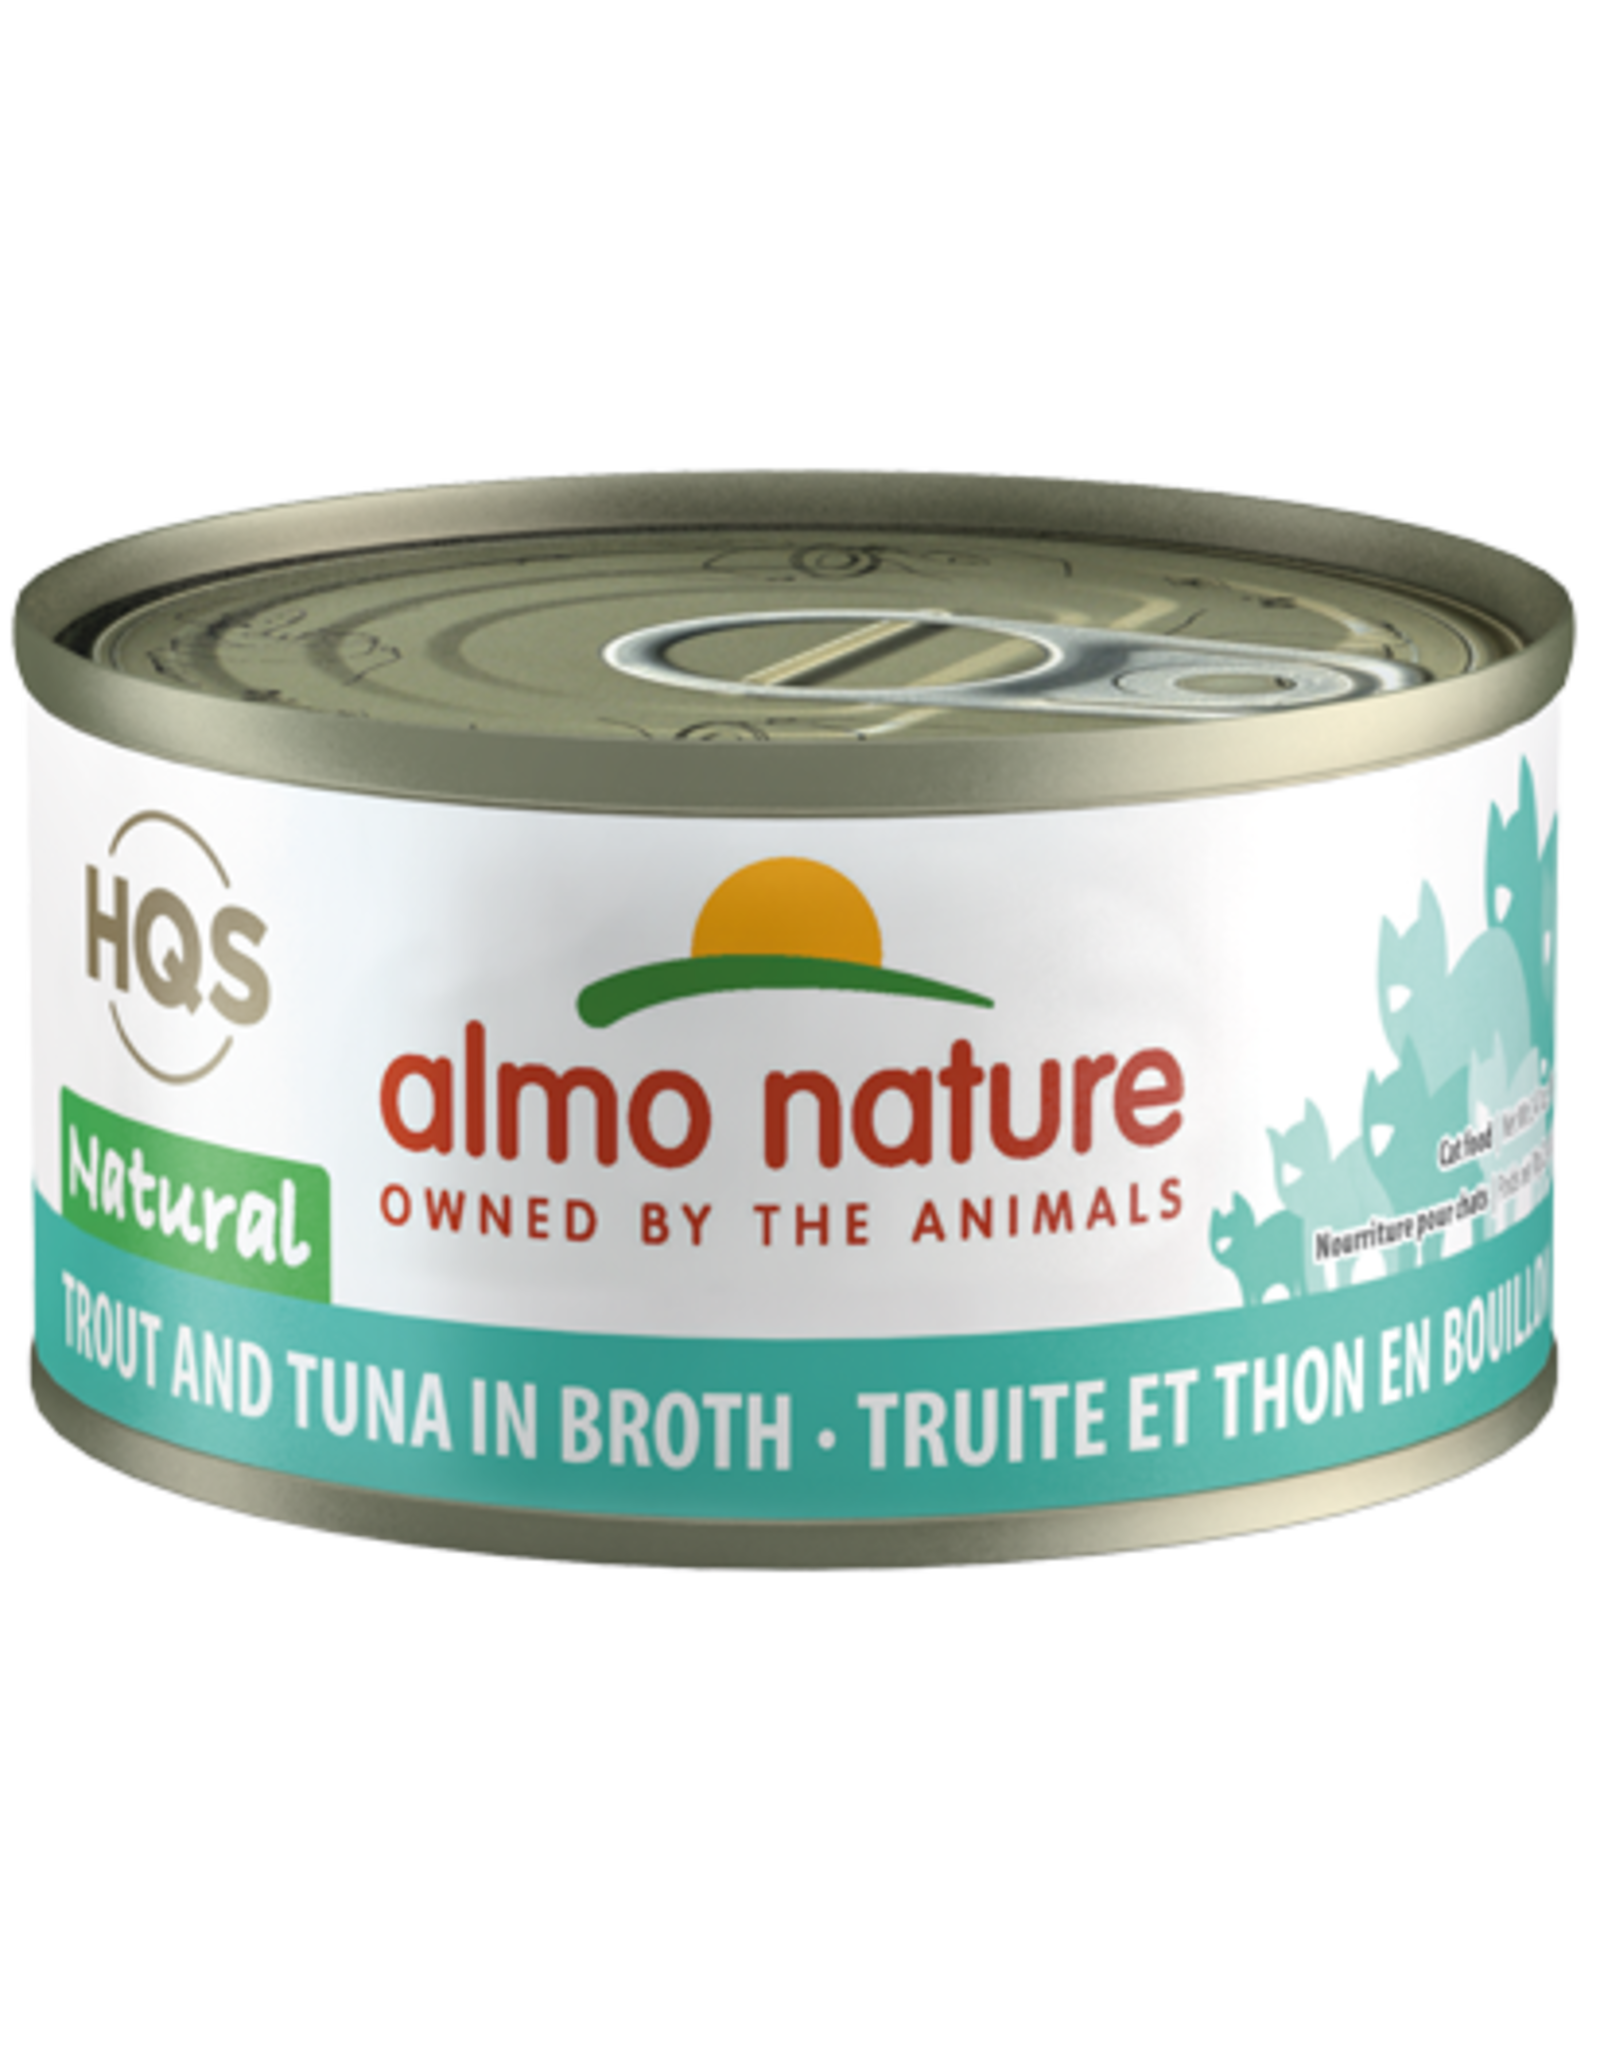 Almo Nature Almo Nature HQS Natural Wet Cat Food Trout and Tuna in Broth 2.47oz Can Grain Free